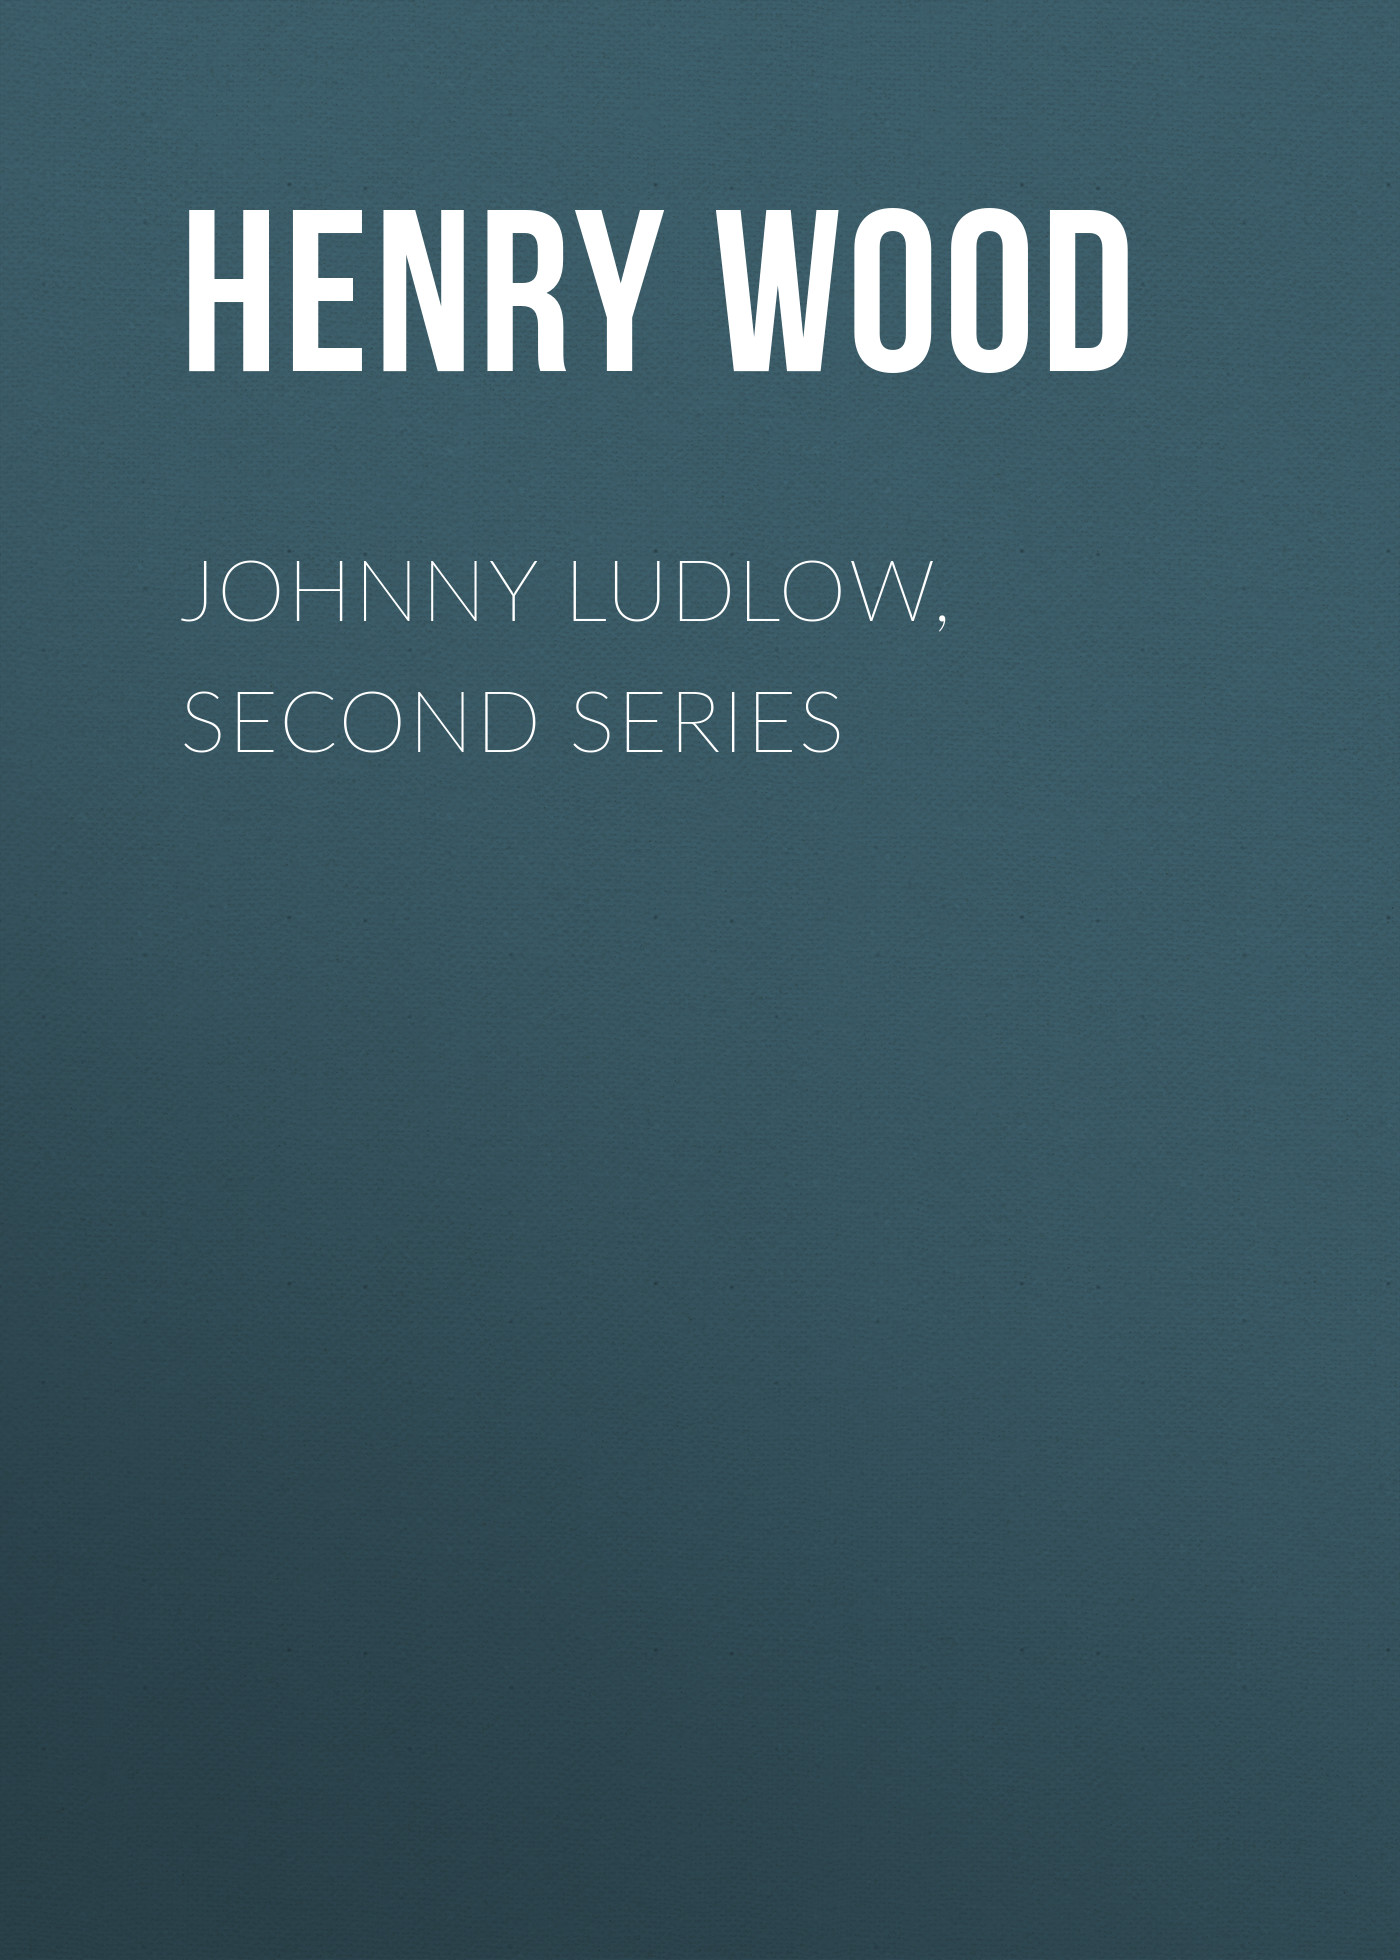 лучшая цена Henry Wood Johnny Ludlow, Second Series